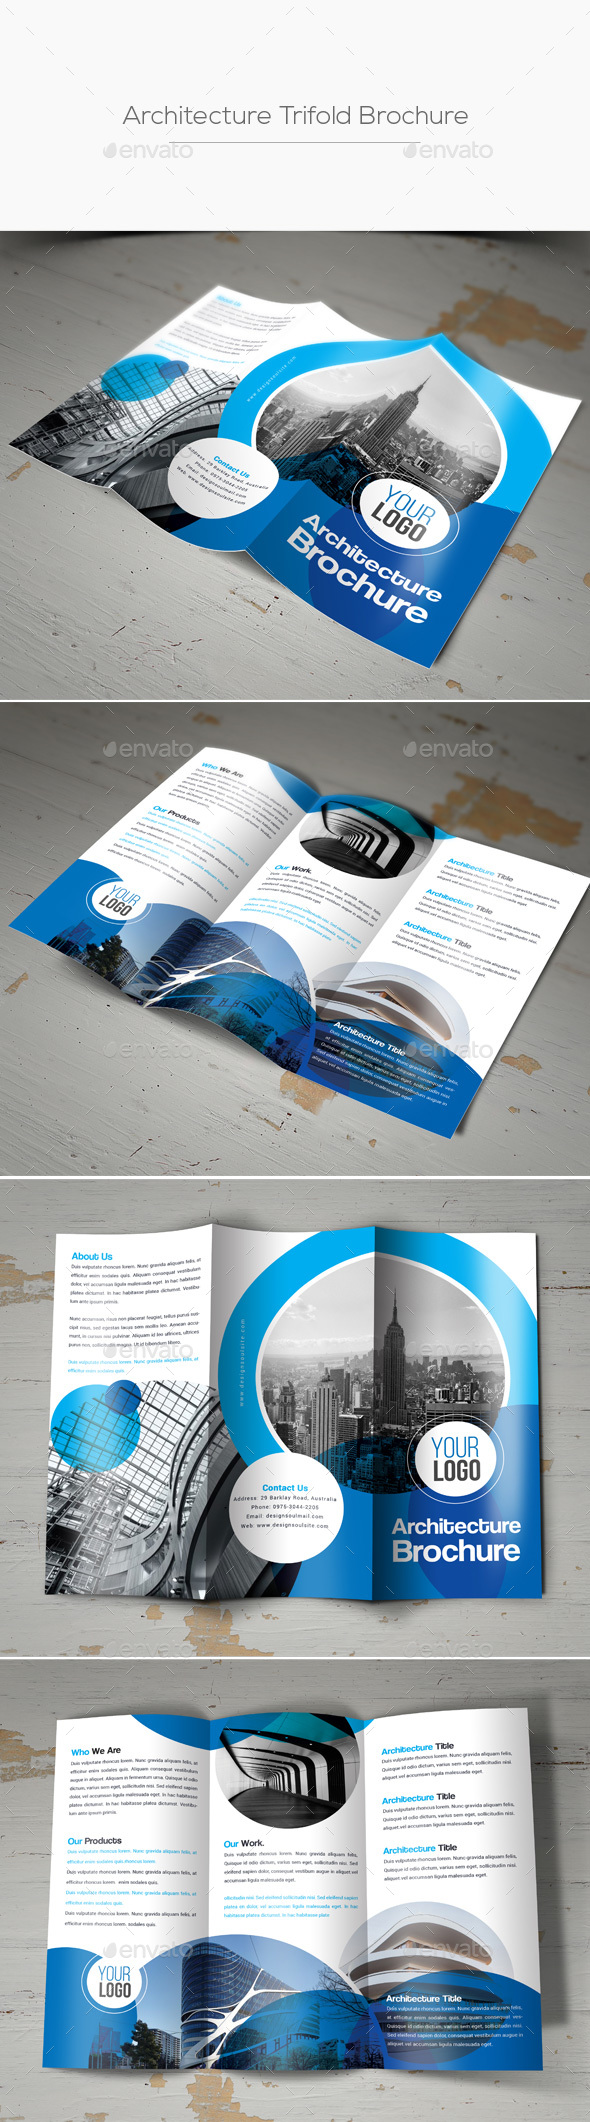 Architecture Trifold Brochure - Corporate Brochures